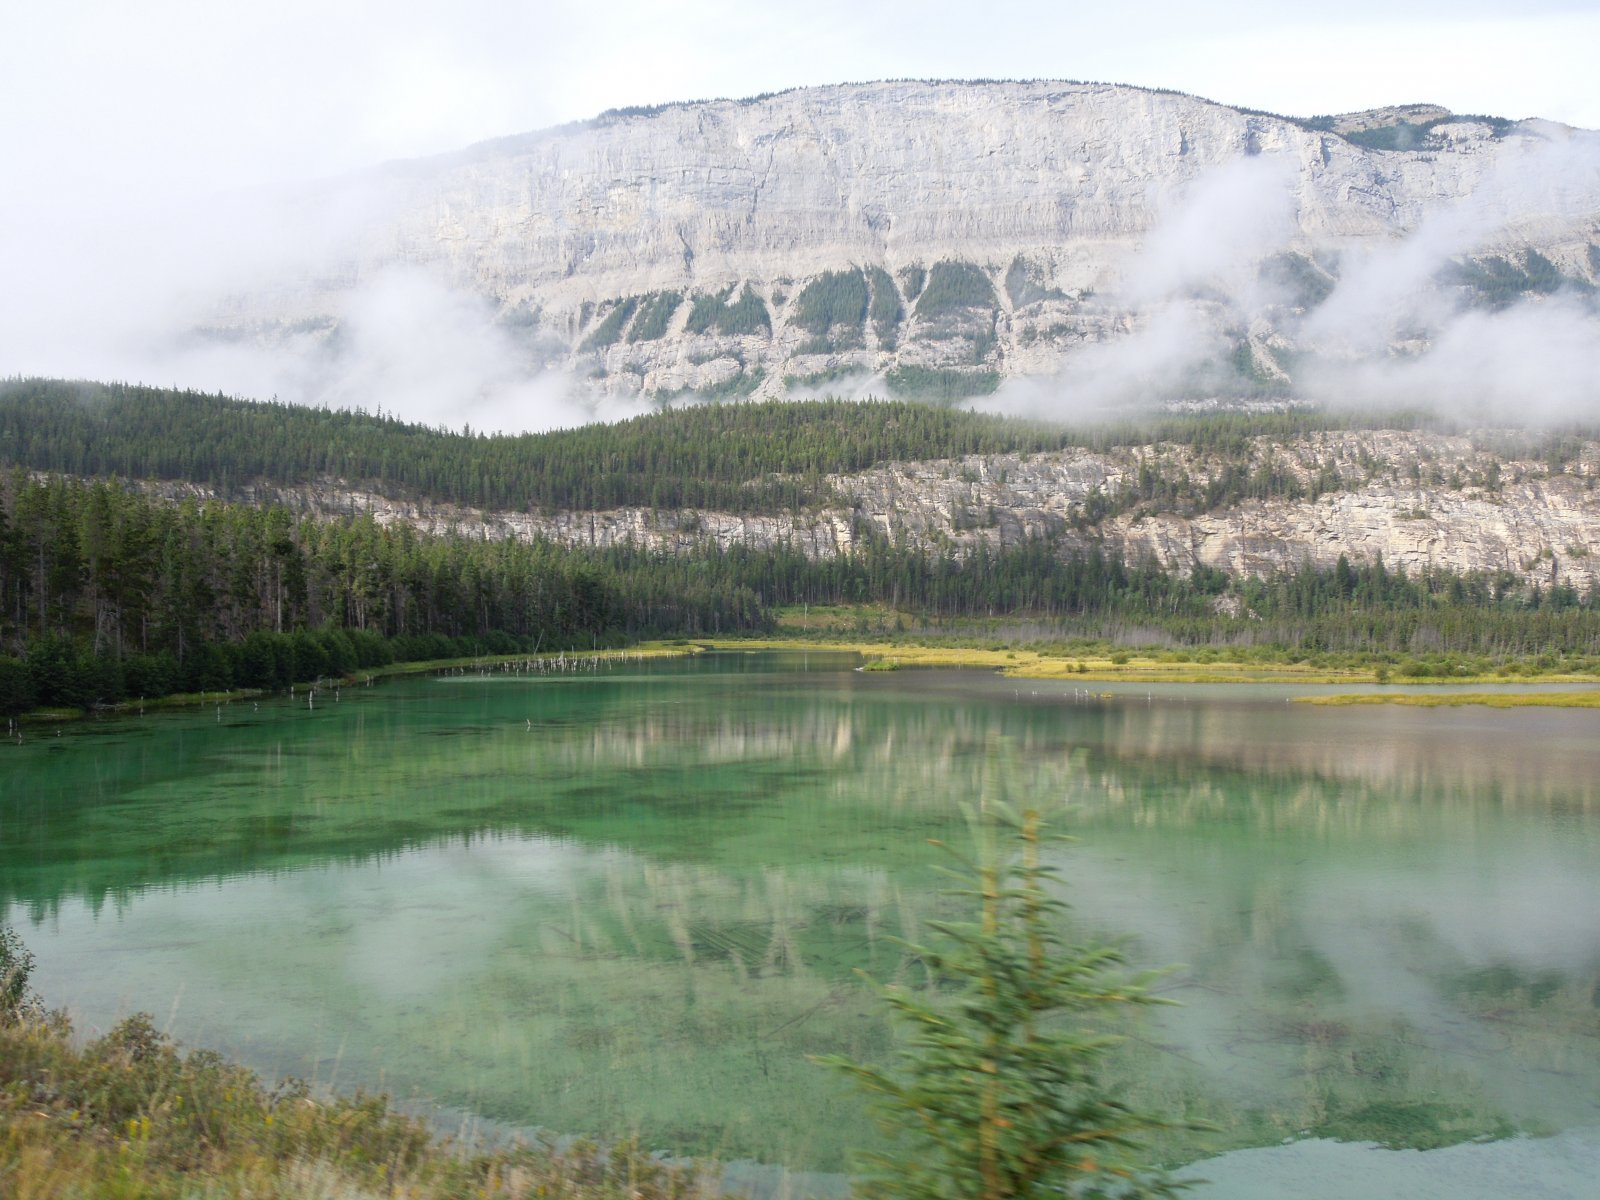 Click image for larger version  Name:Dawson Creek to Icefield Parkway to Cochrane 081.jpg Views:57 Size:310.2 KB ID:222433